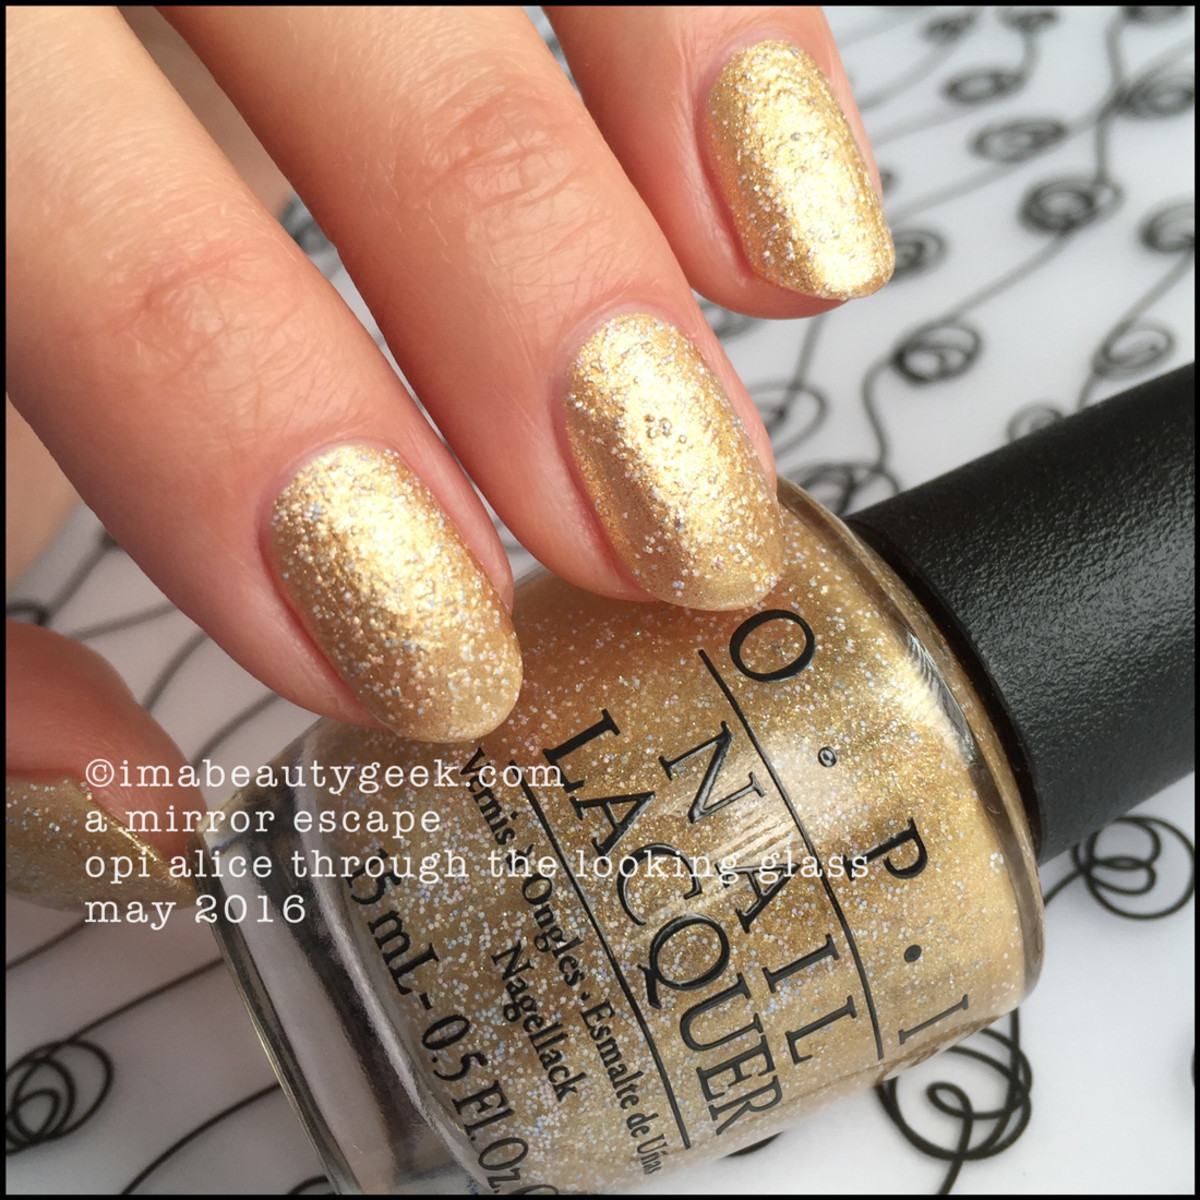 OPI A Mirror Escape_OPI Alice Through the Looking Glass 2016